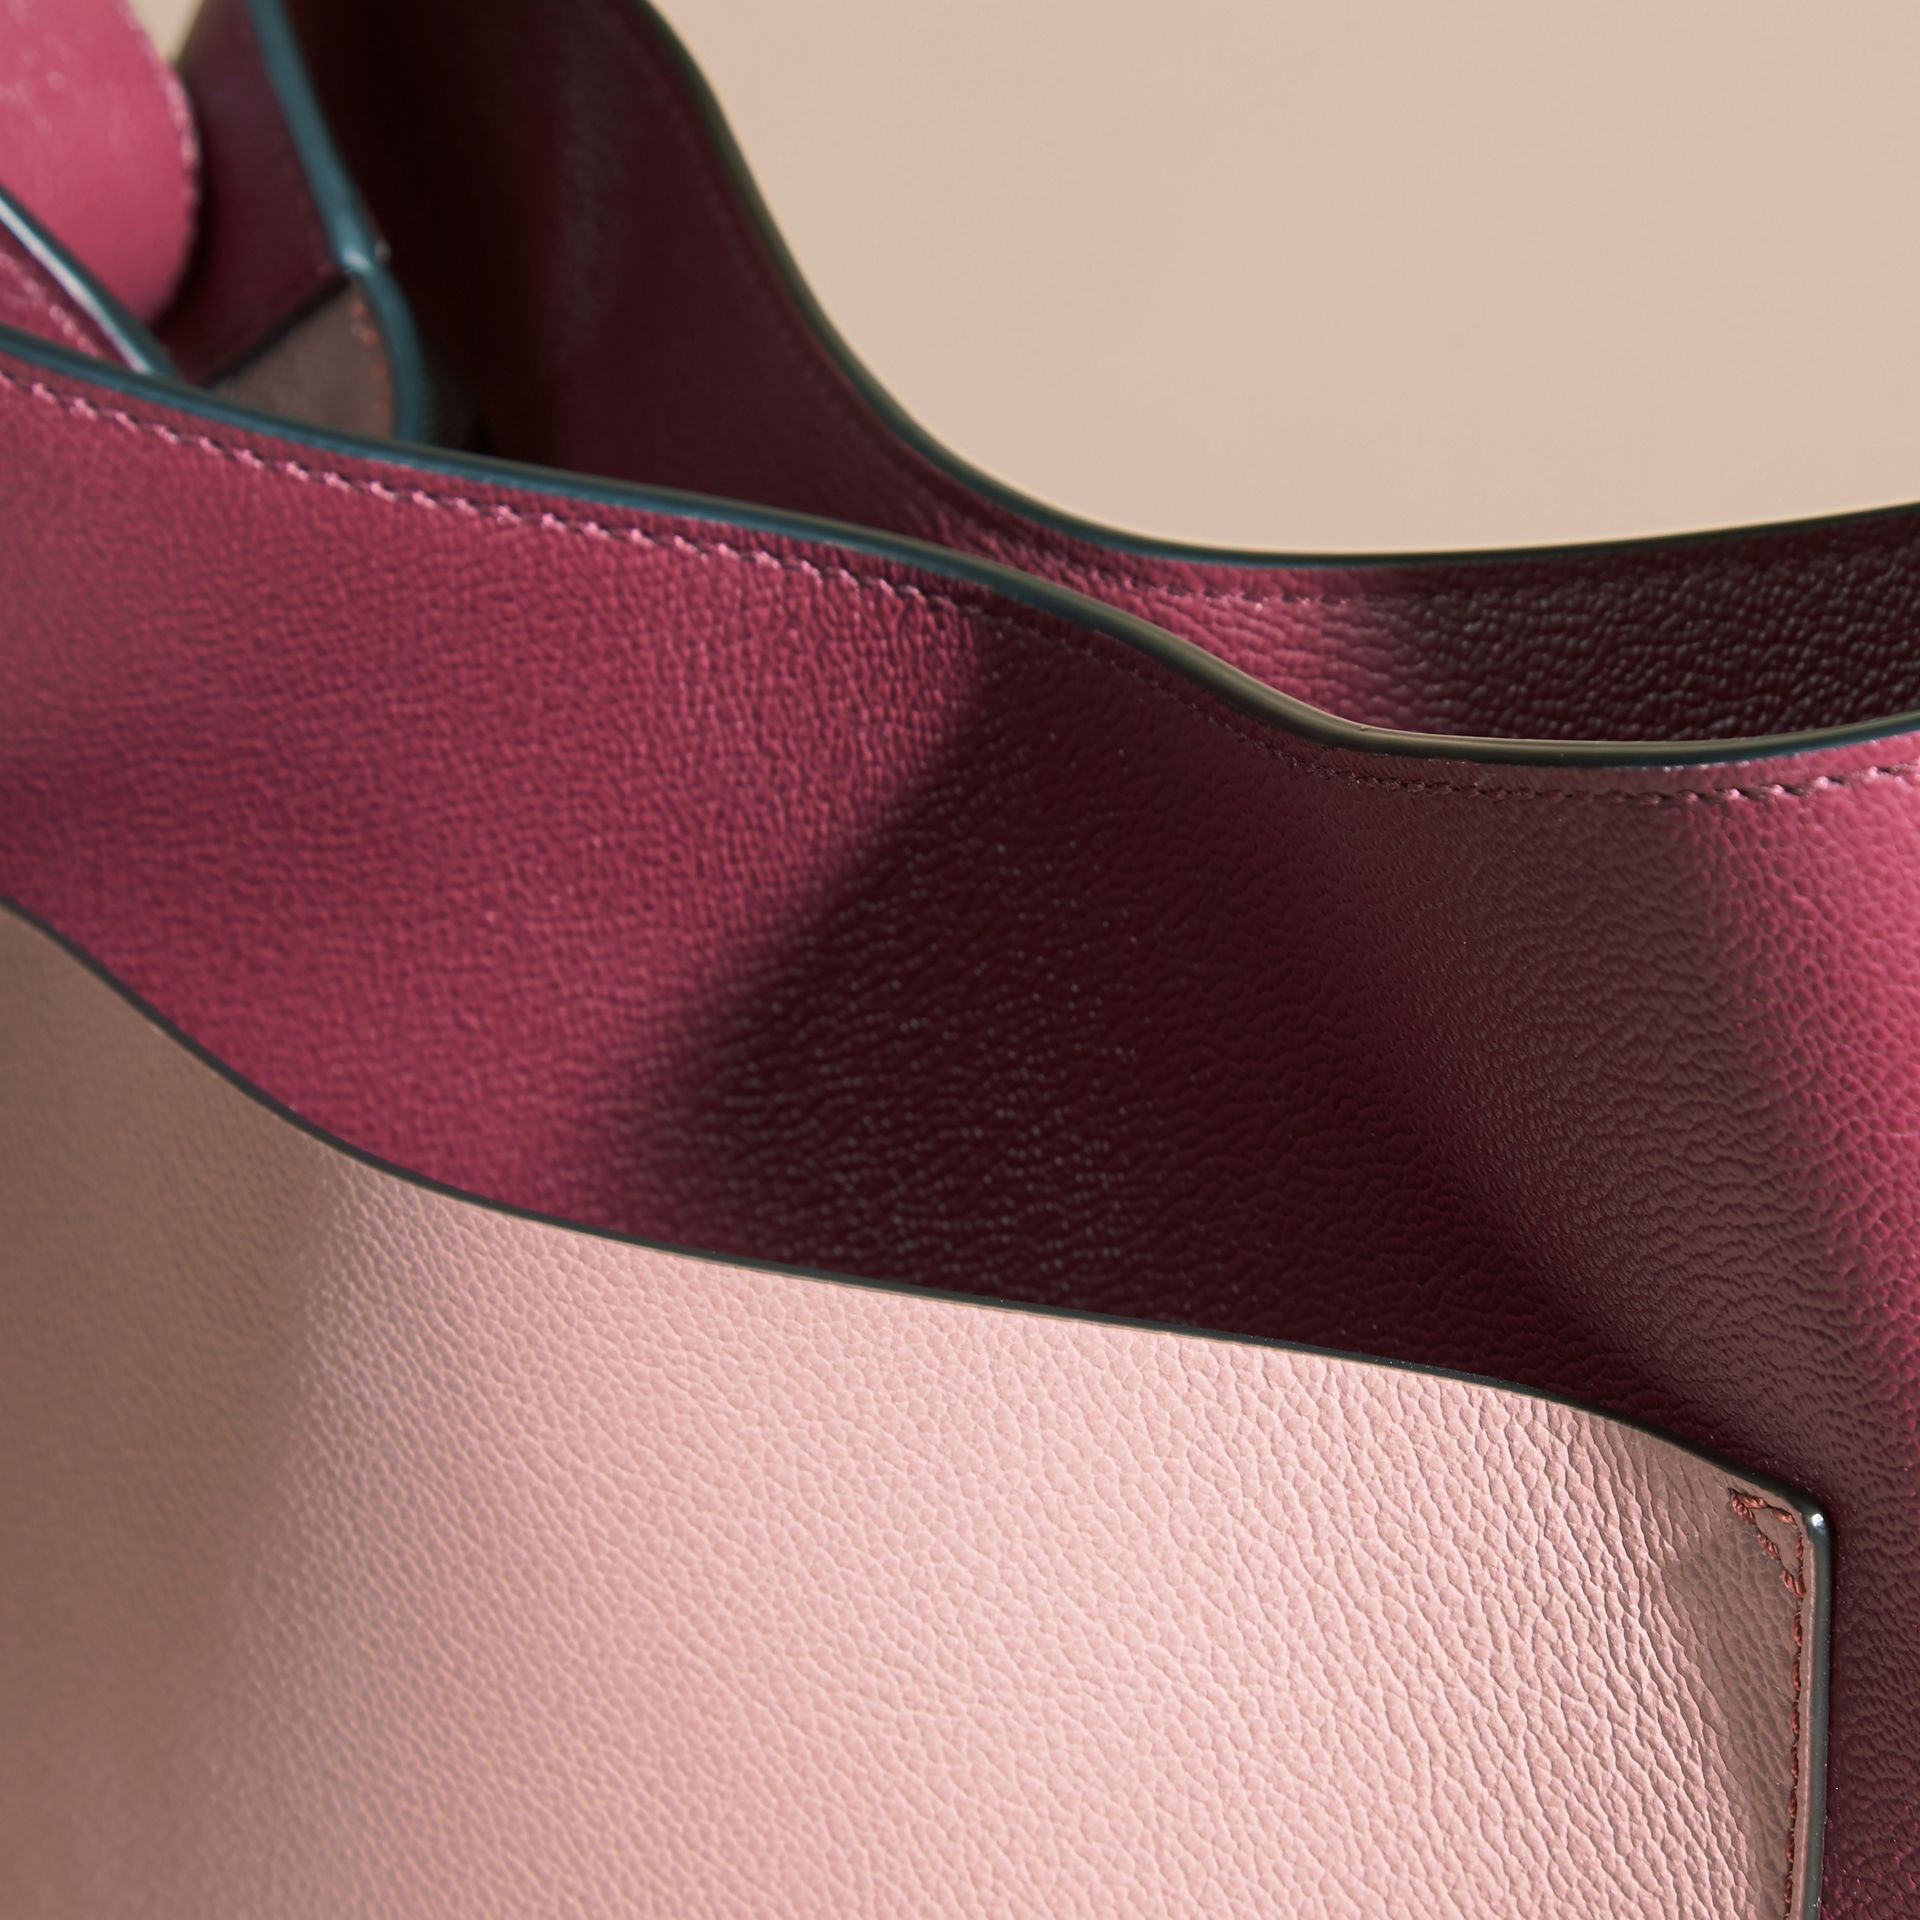 Textured Leather Shoulder Bag in Dark Plum/ Dusty Pink - gallery image 6